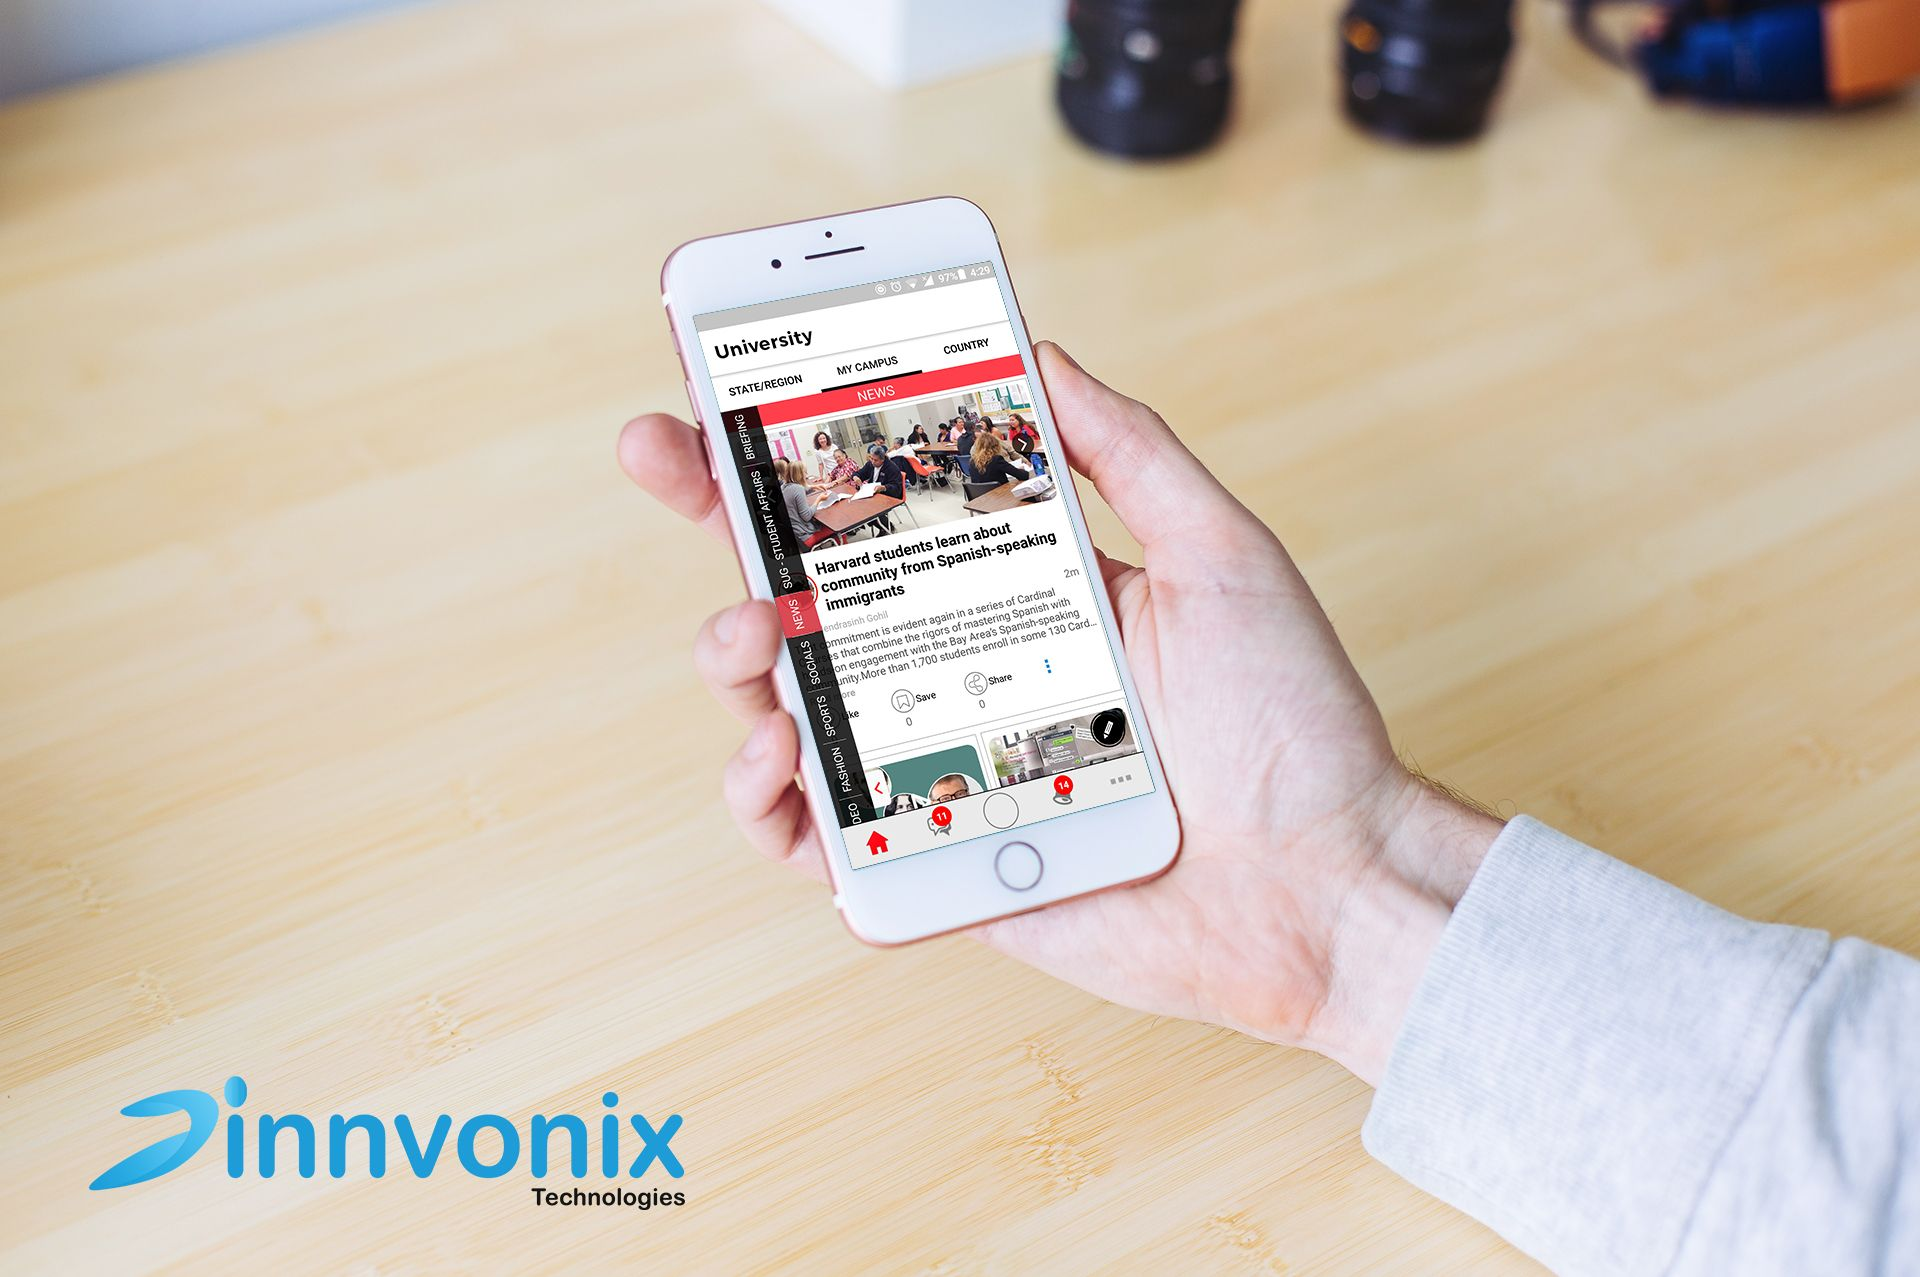 """Pin by innvonixtech on All About """"Innvonix Technologies"""